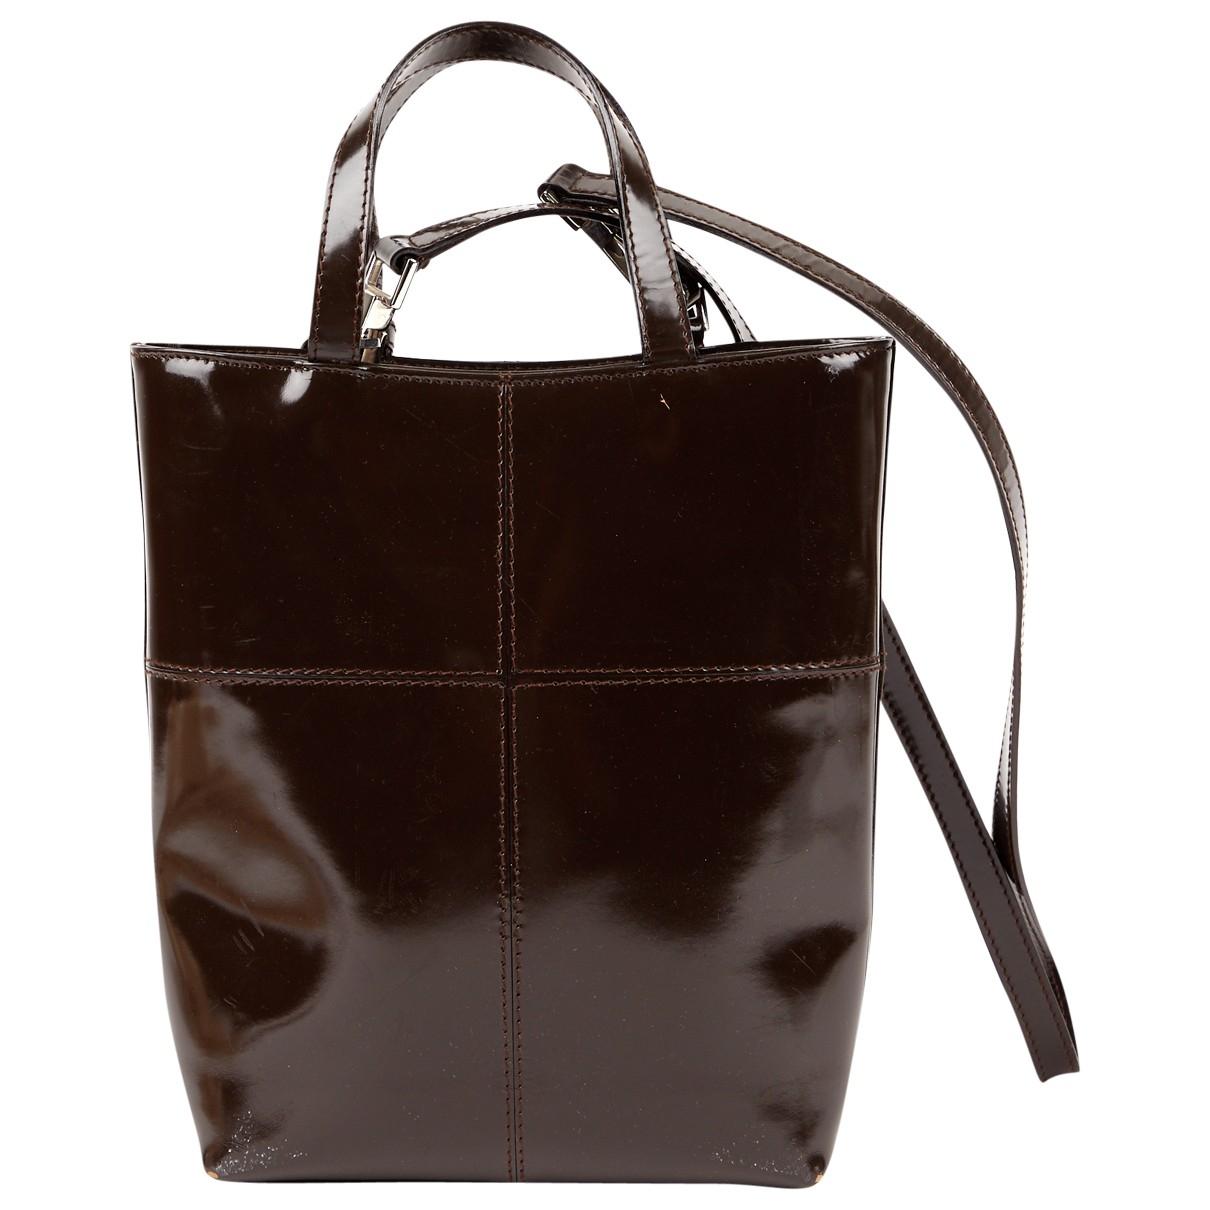 Gucci \N Brown Patent leather handbag for Women \N